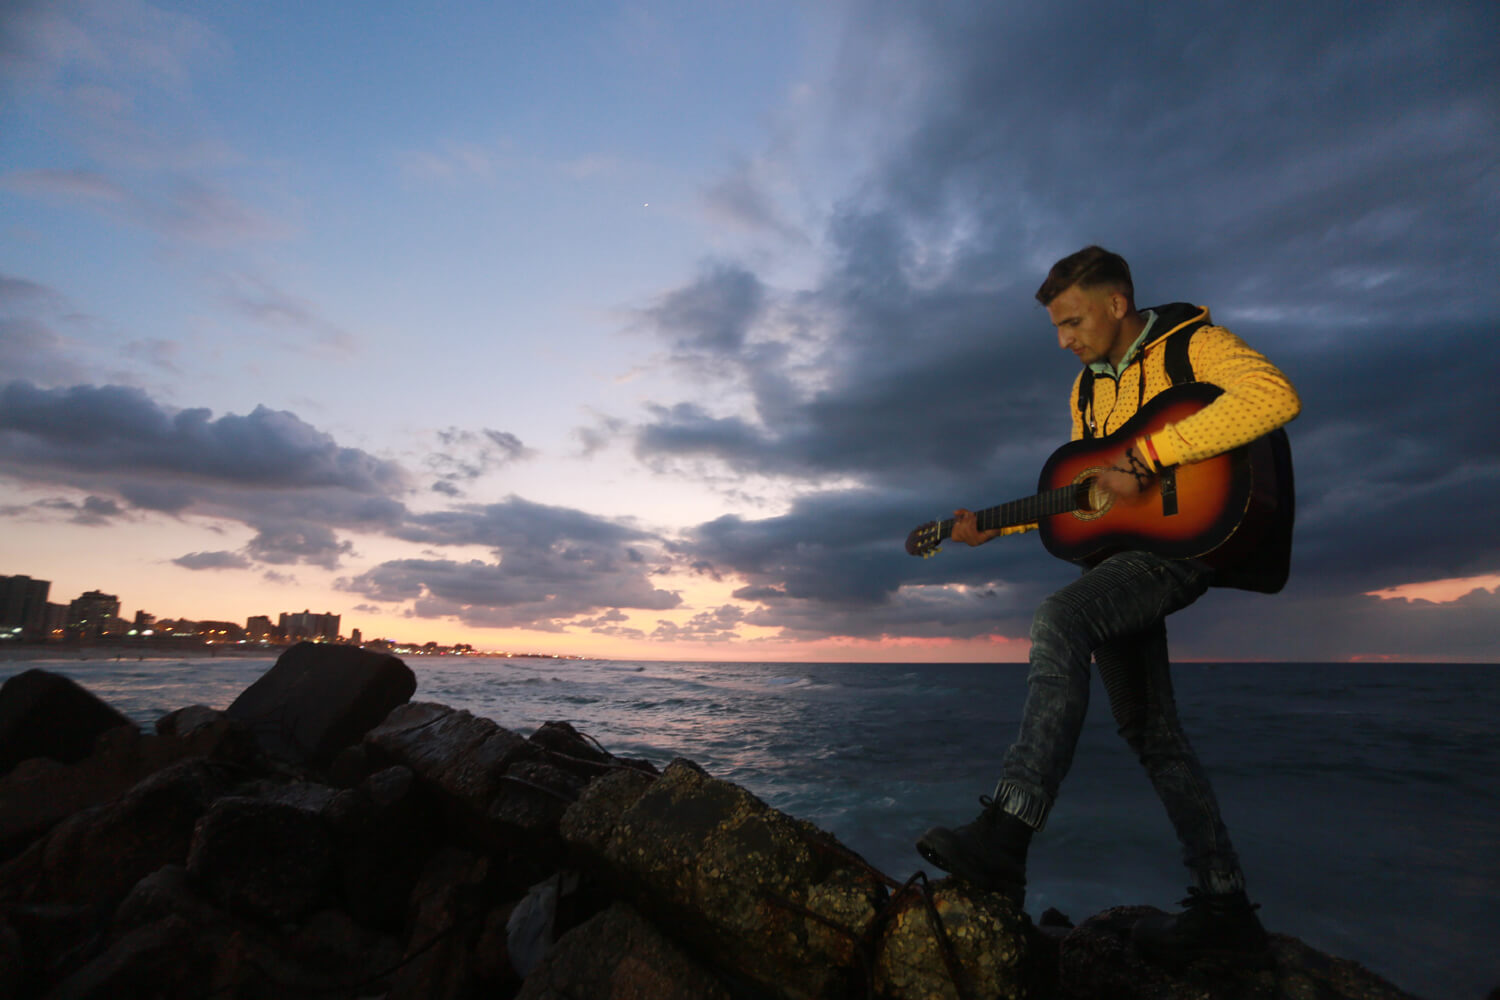 A young man plays the guitar in front of the sea (Photo: Mohammed Asad)